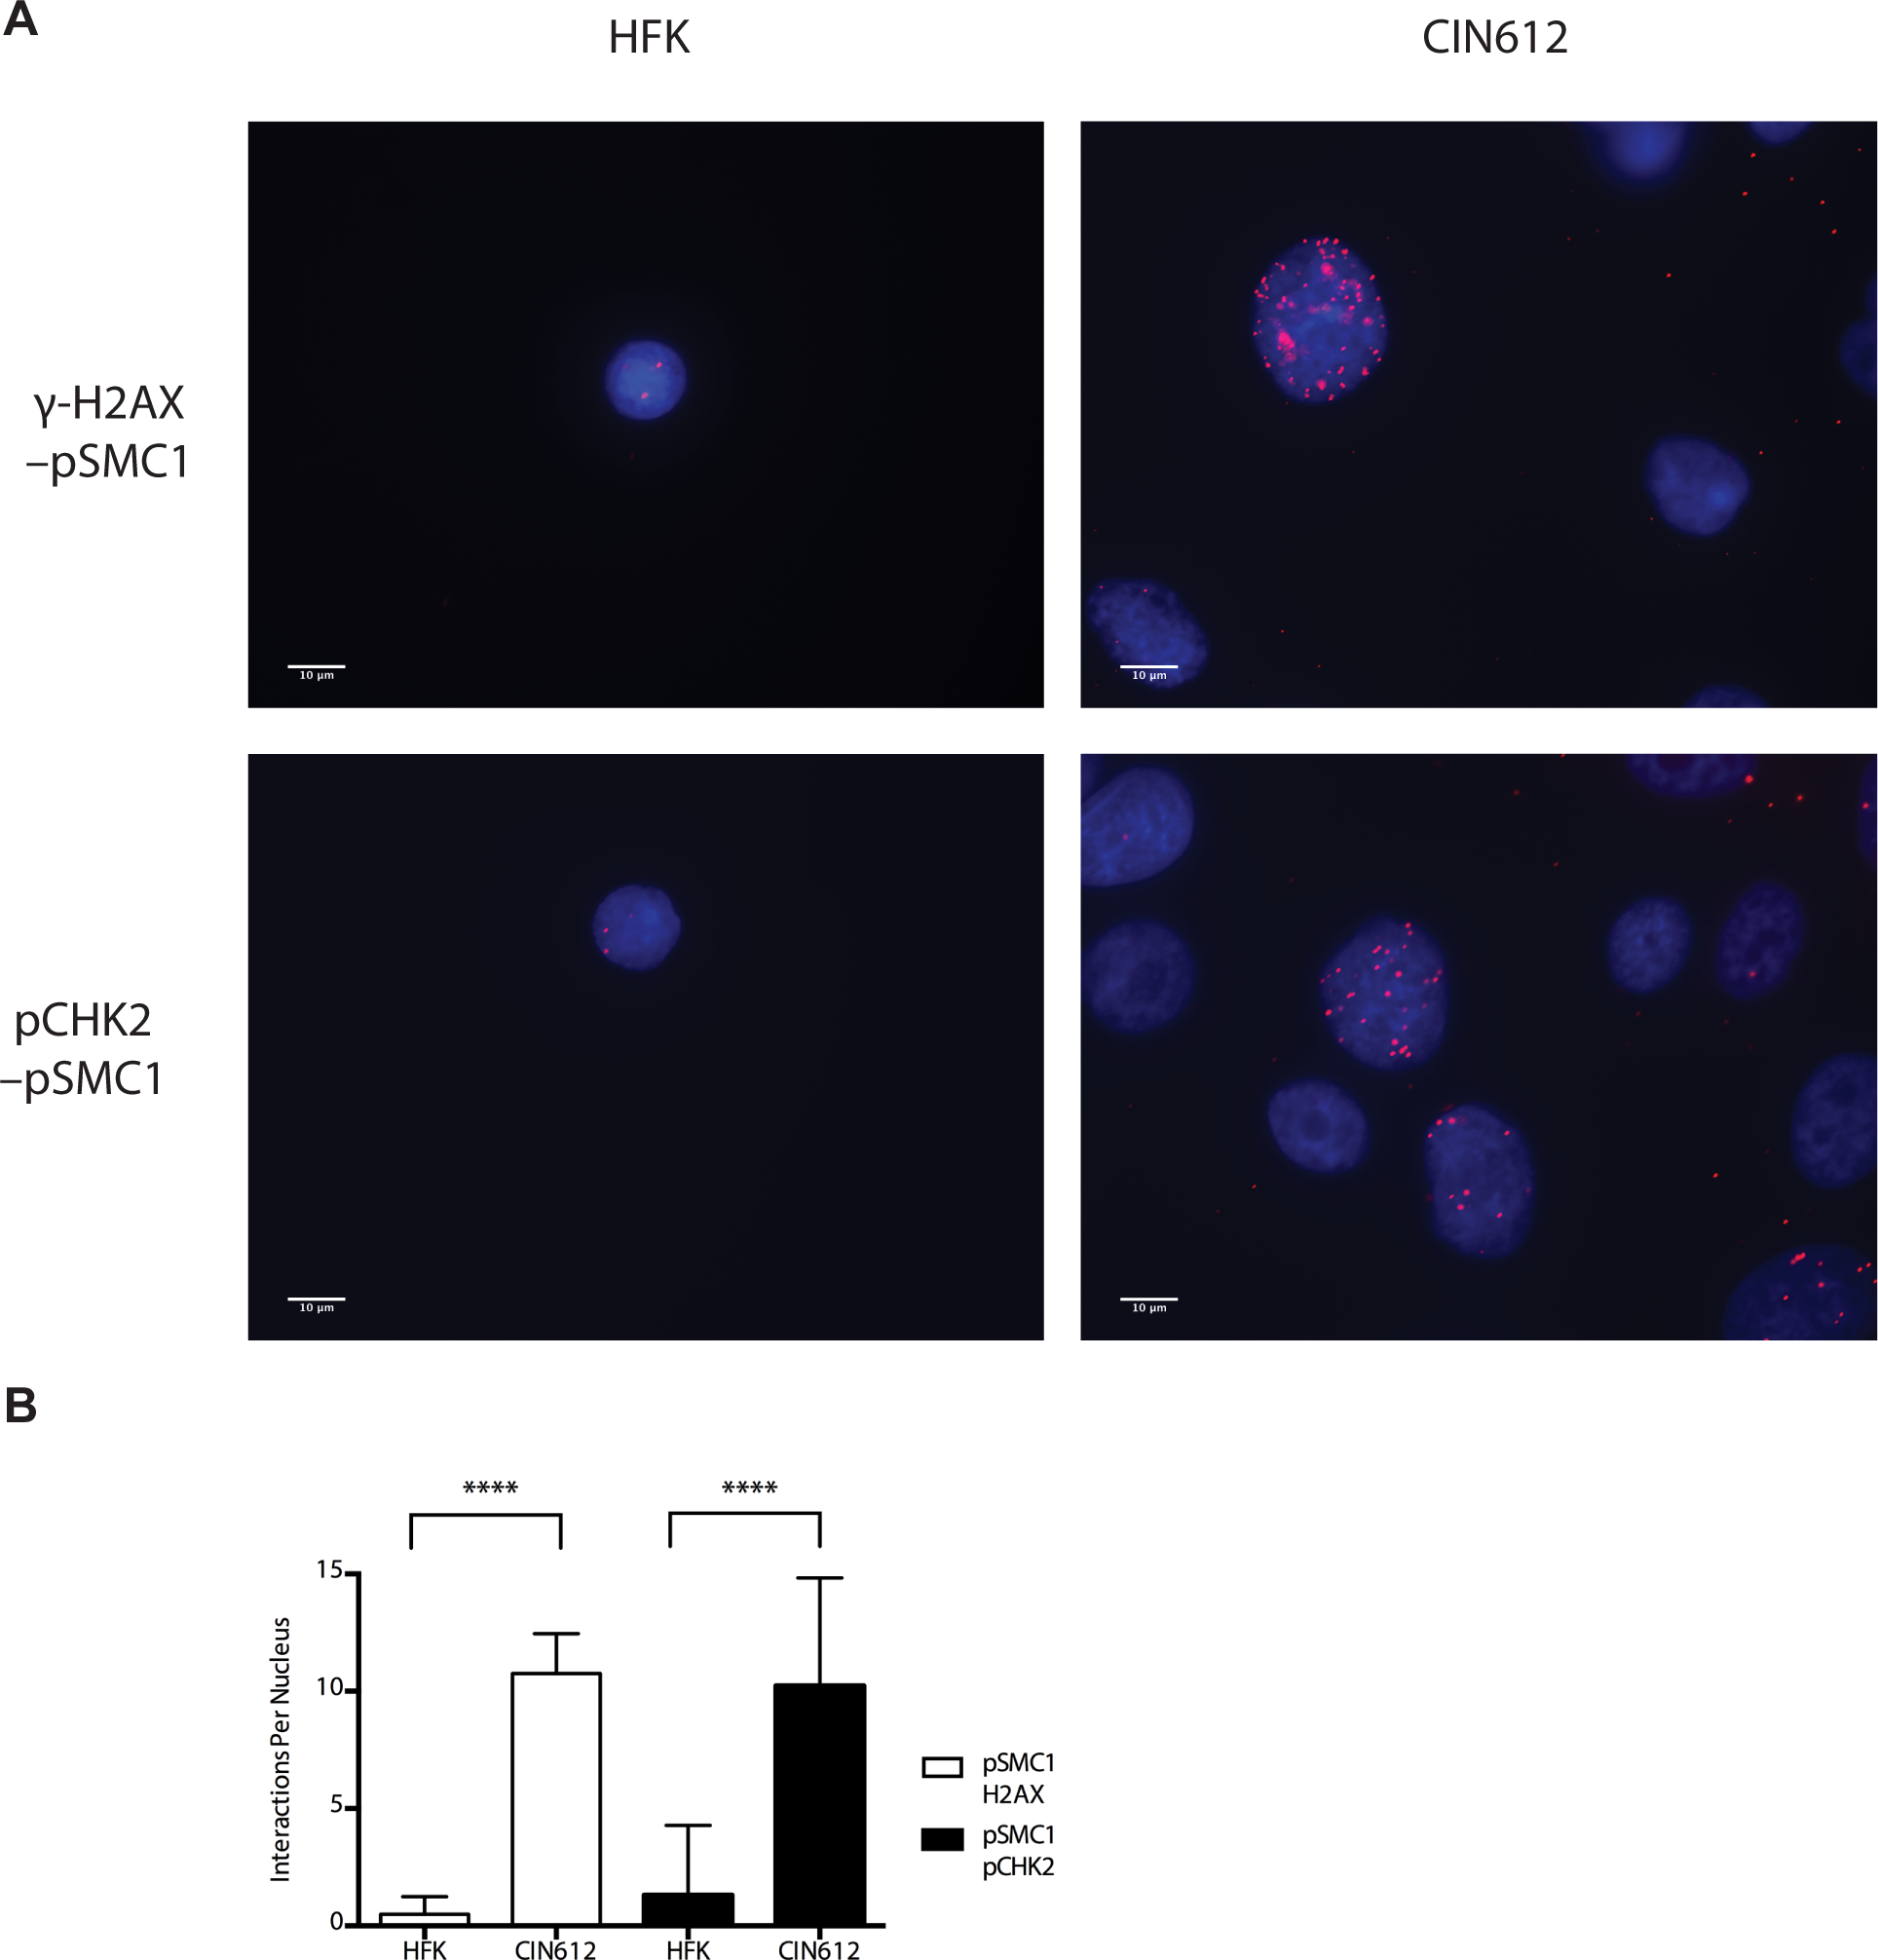 On-slide co-immunoprecipitations for pSMC1 in HFKs and HPV positive cells shows a direct interaction between pSMC1 and γ-H2AX as well as pSMC1 and pCHK2 in HPV positive cells but not HFKs.